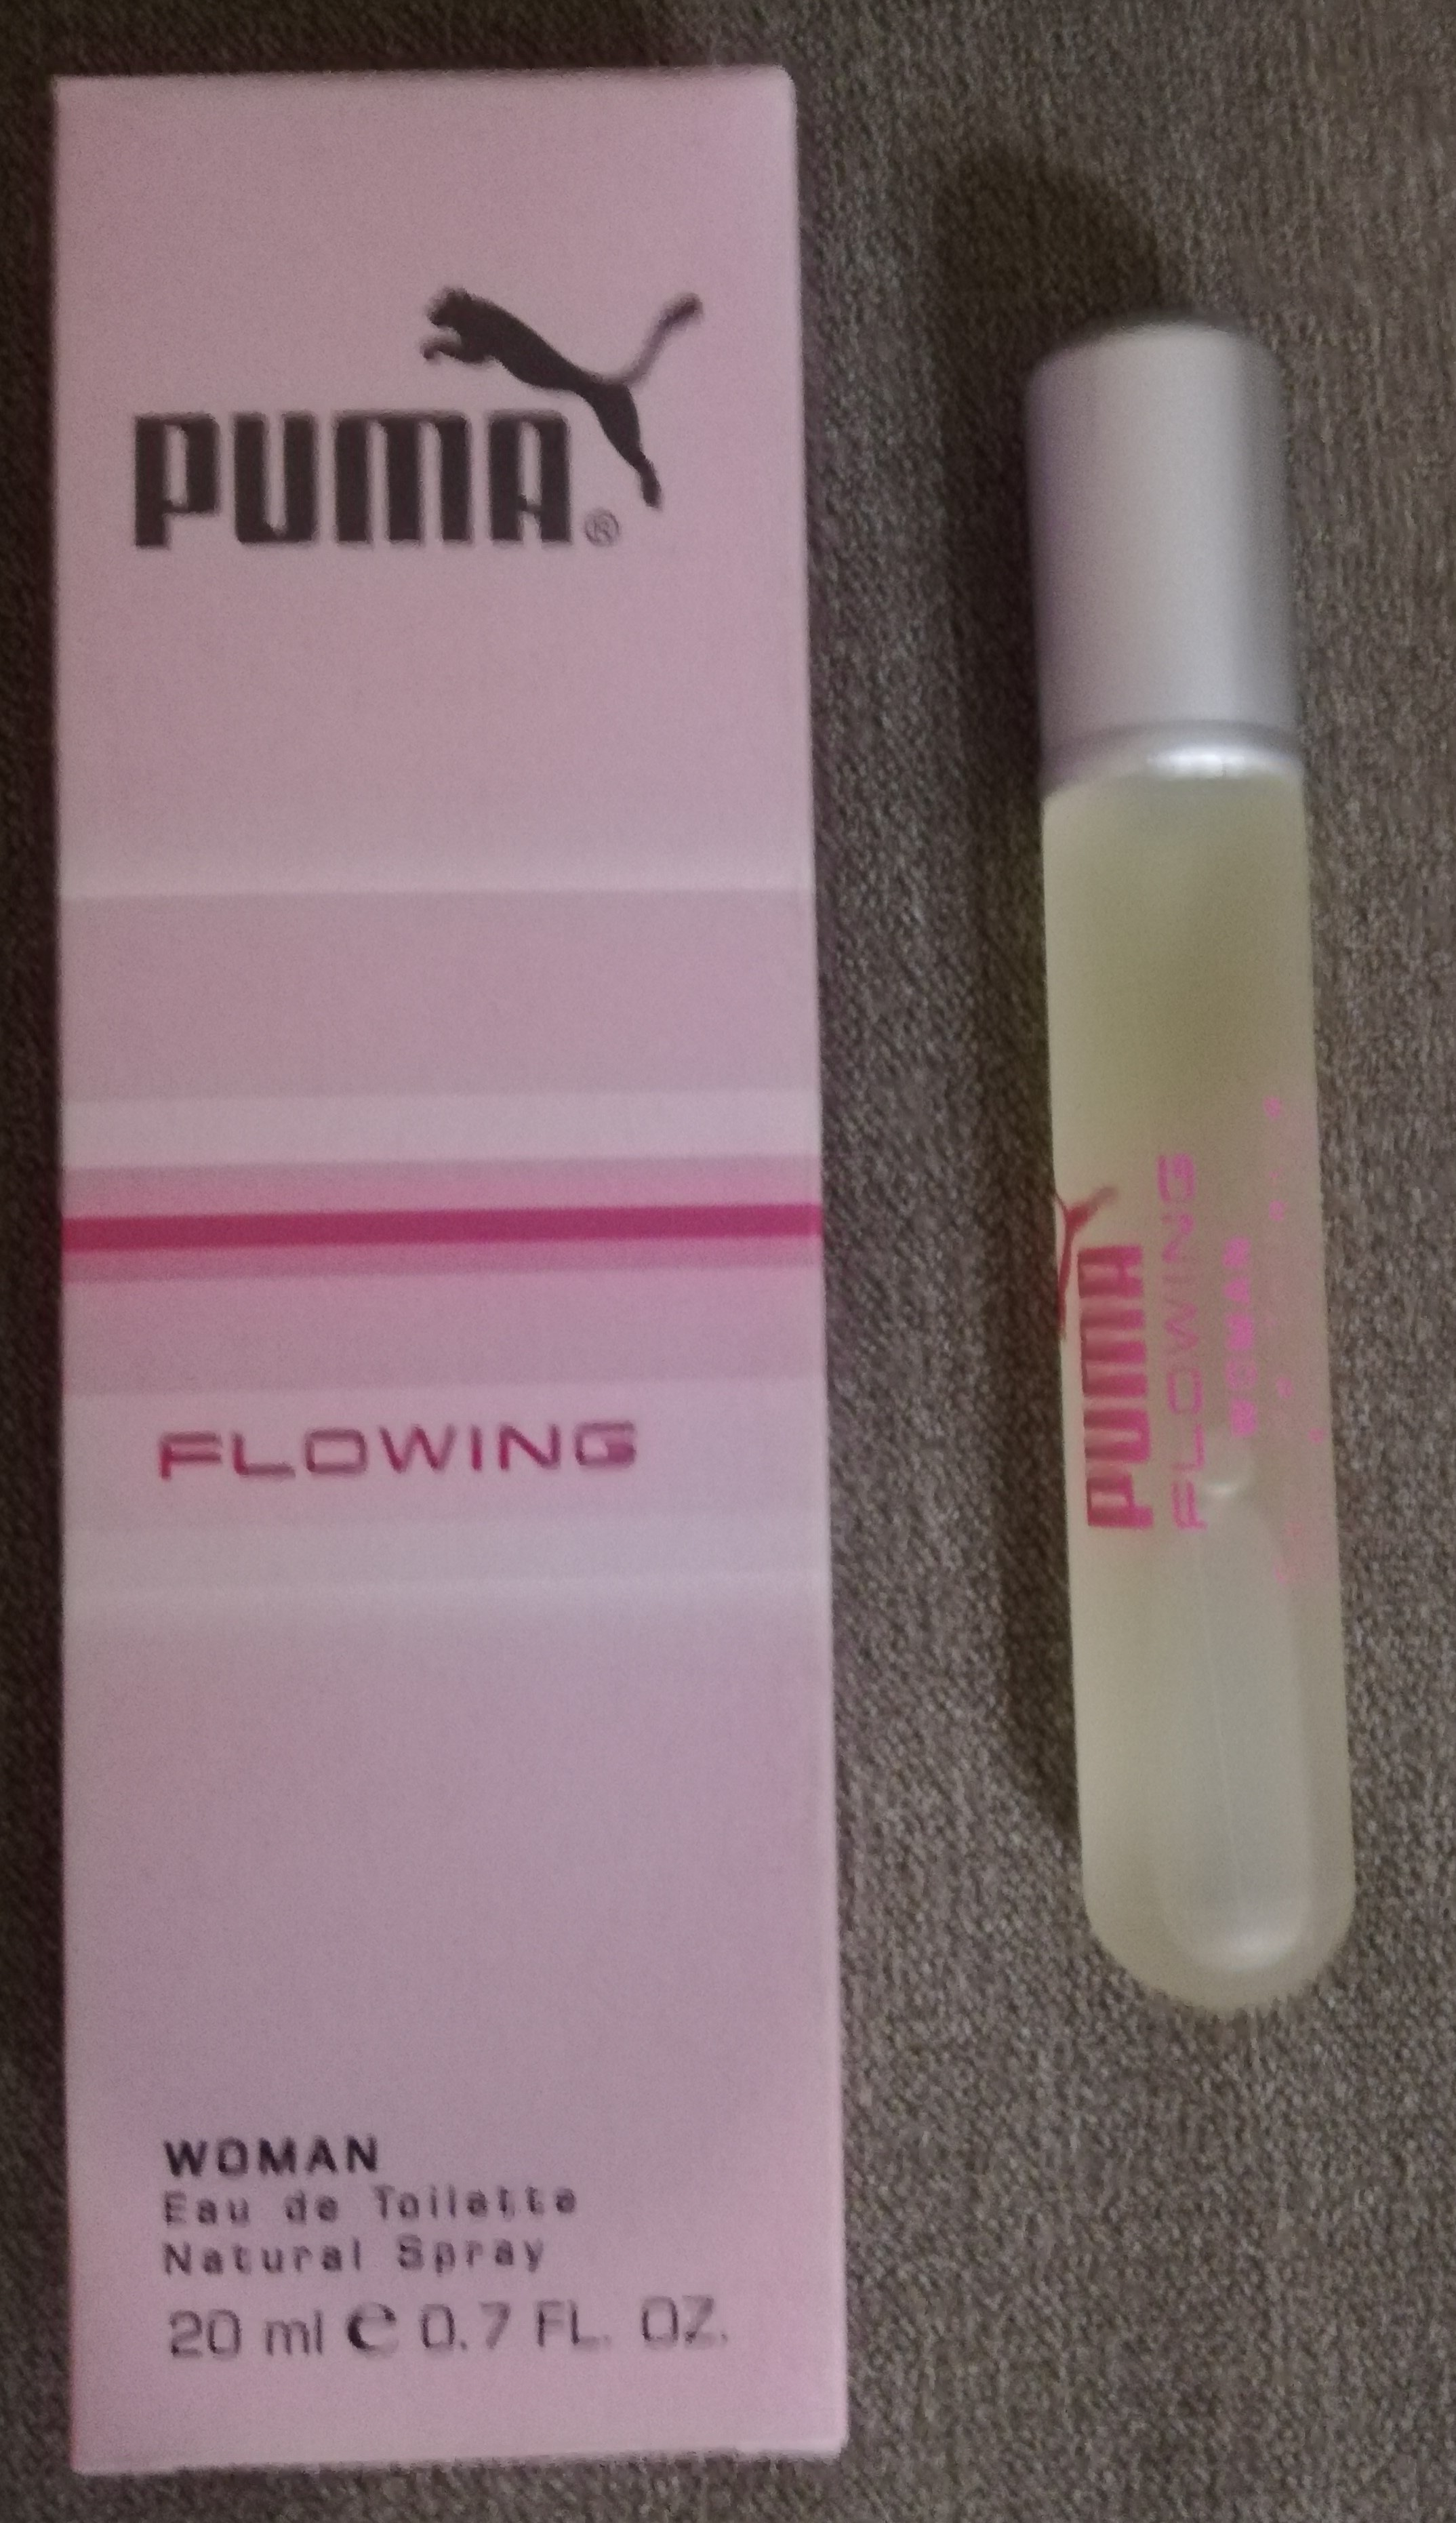 Puma Flowing Woman Eau de Toilette 20 ml